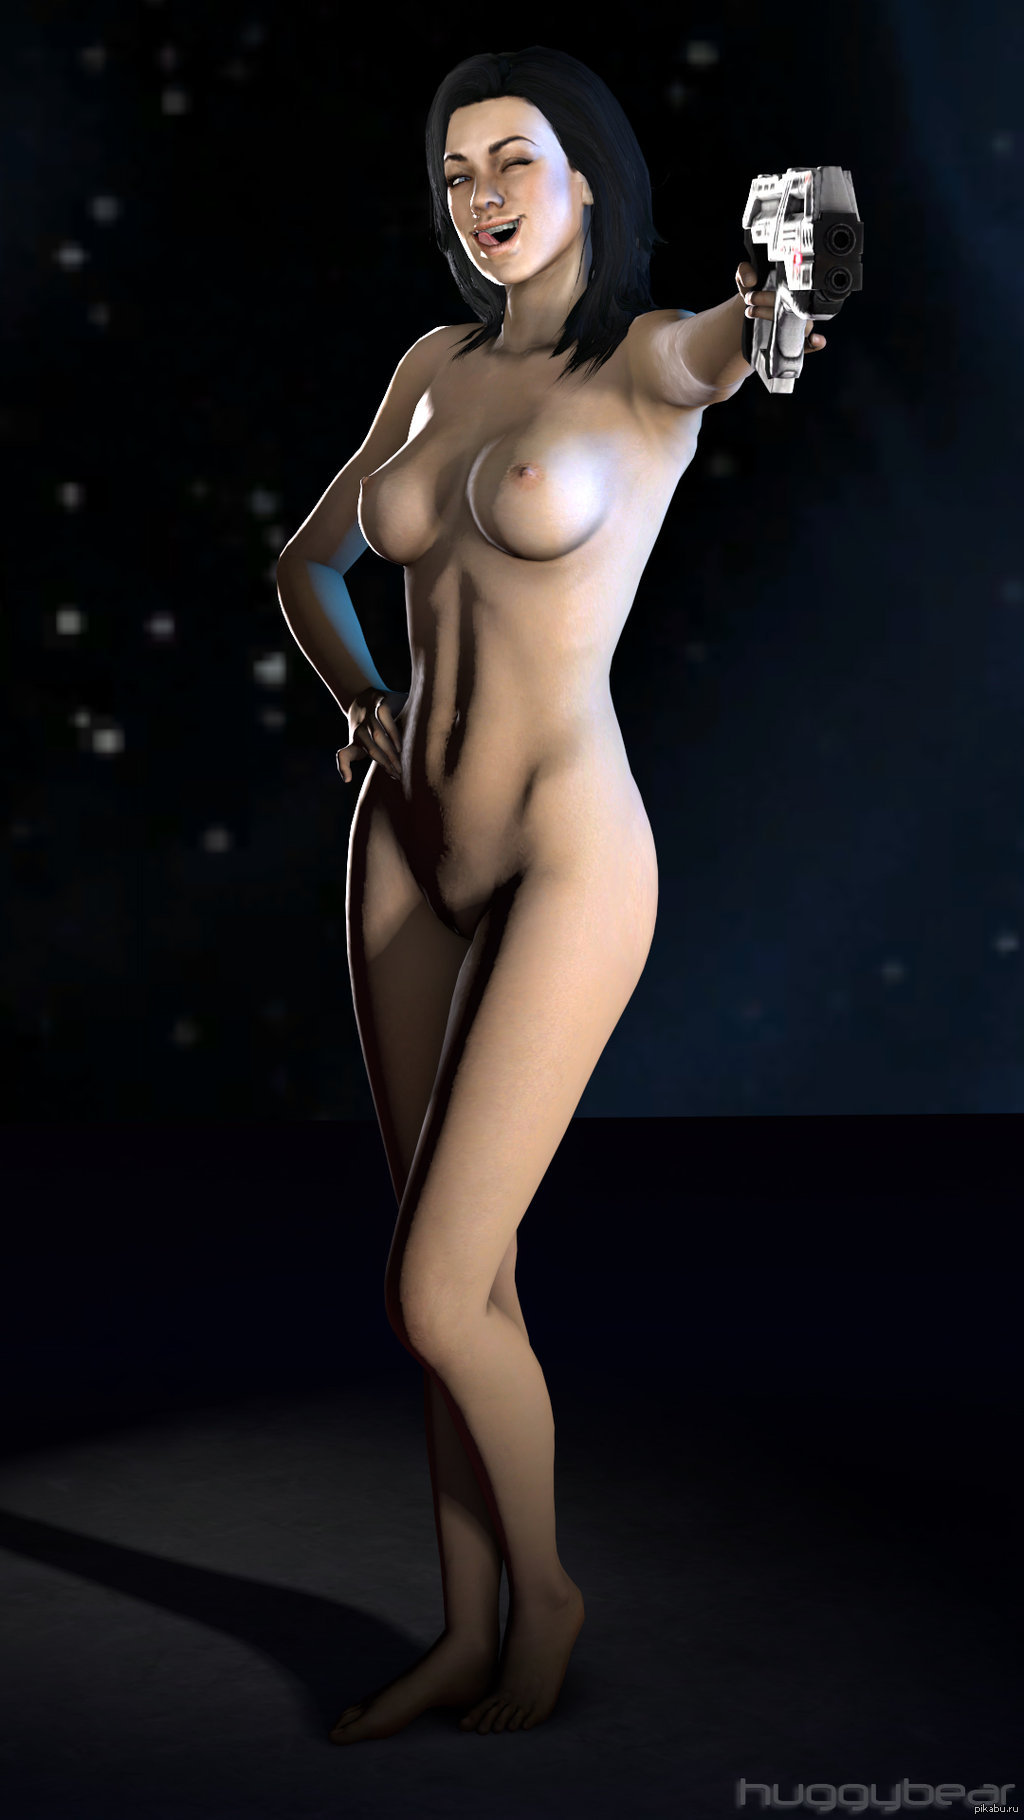 Miranda from mass effect 2 nude video  sex clip